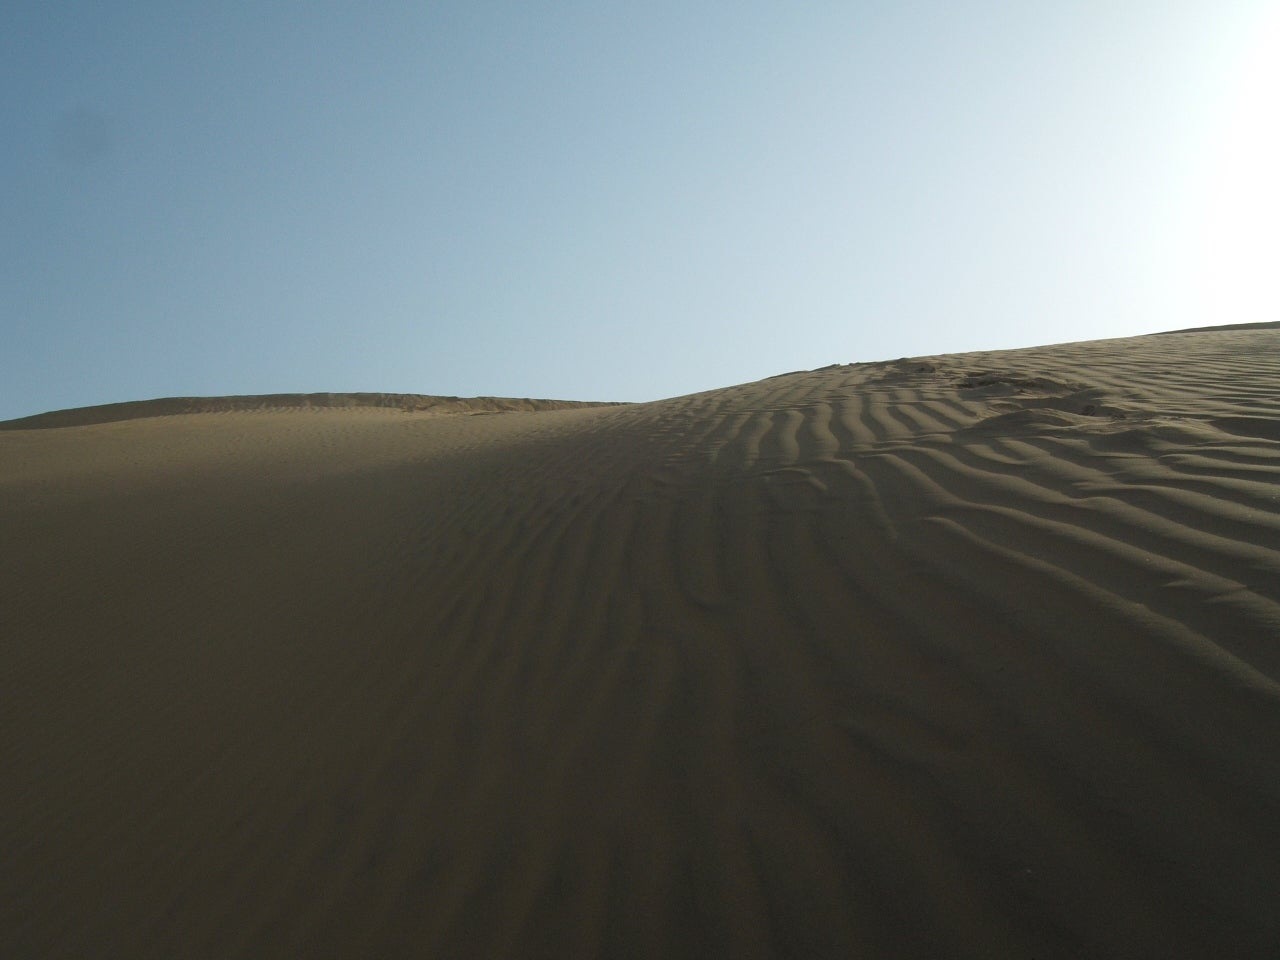 The Jaisalmer desert Dunes